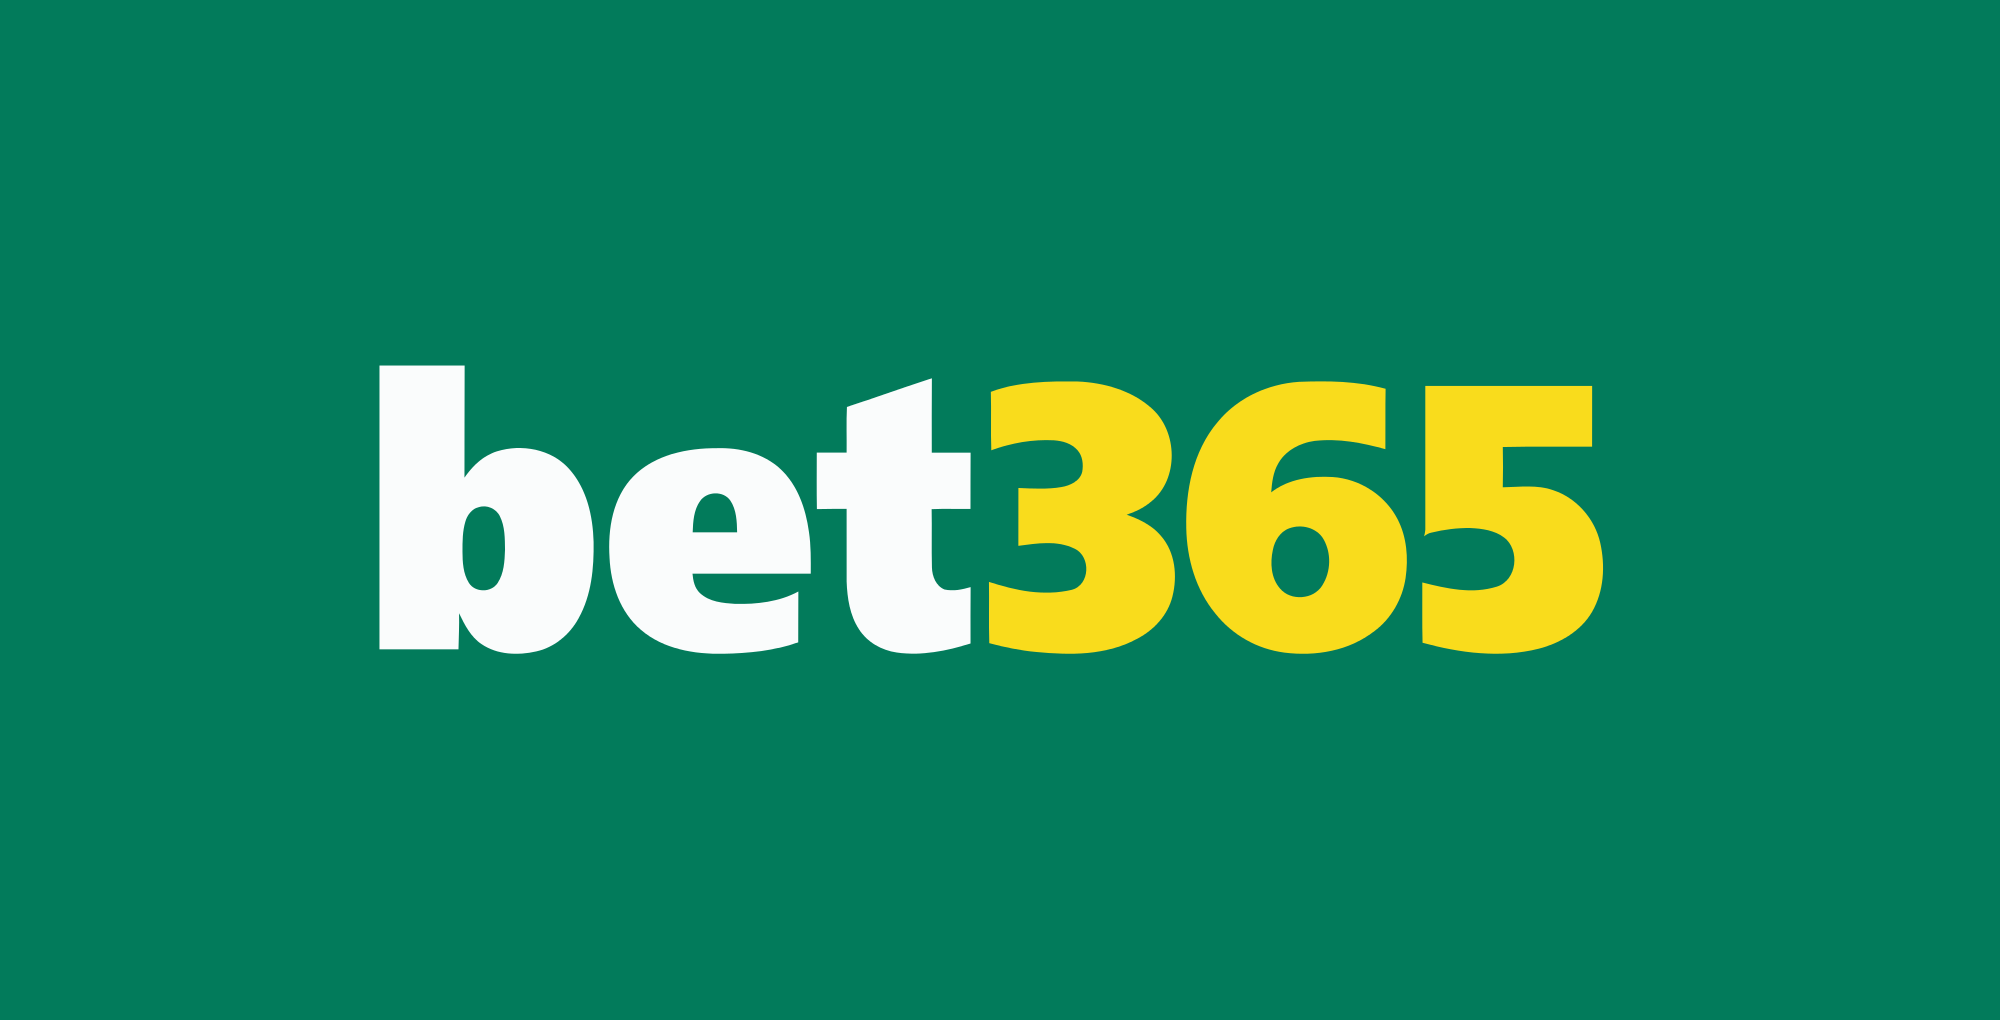 Bet365 Offers and Promotions for new and existing punters including the 2 Goals Up Early Payout